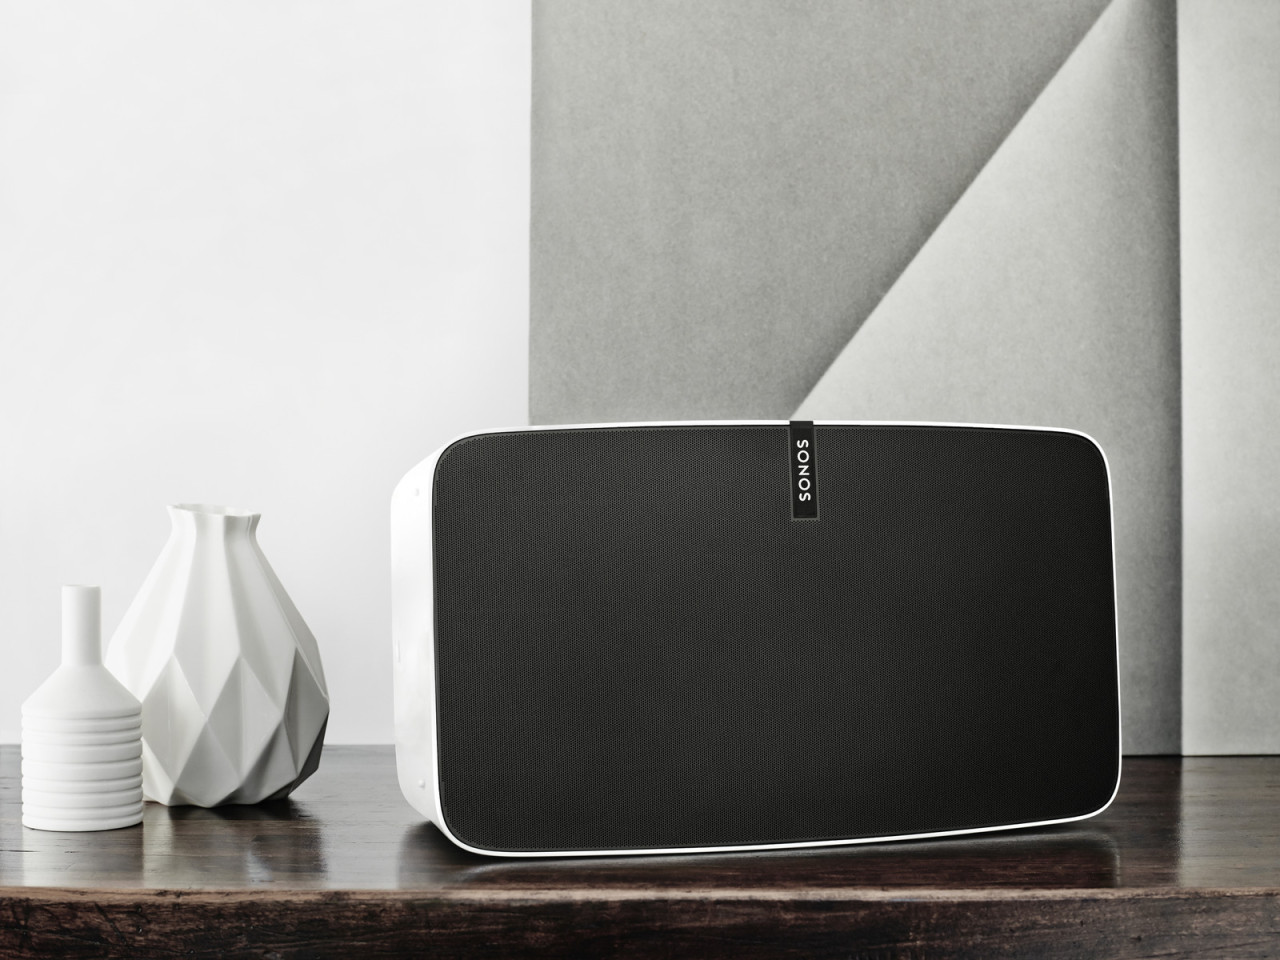 Sonos PLAY:5 Is Simplicity Born Out of Conflict